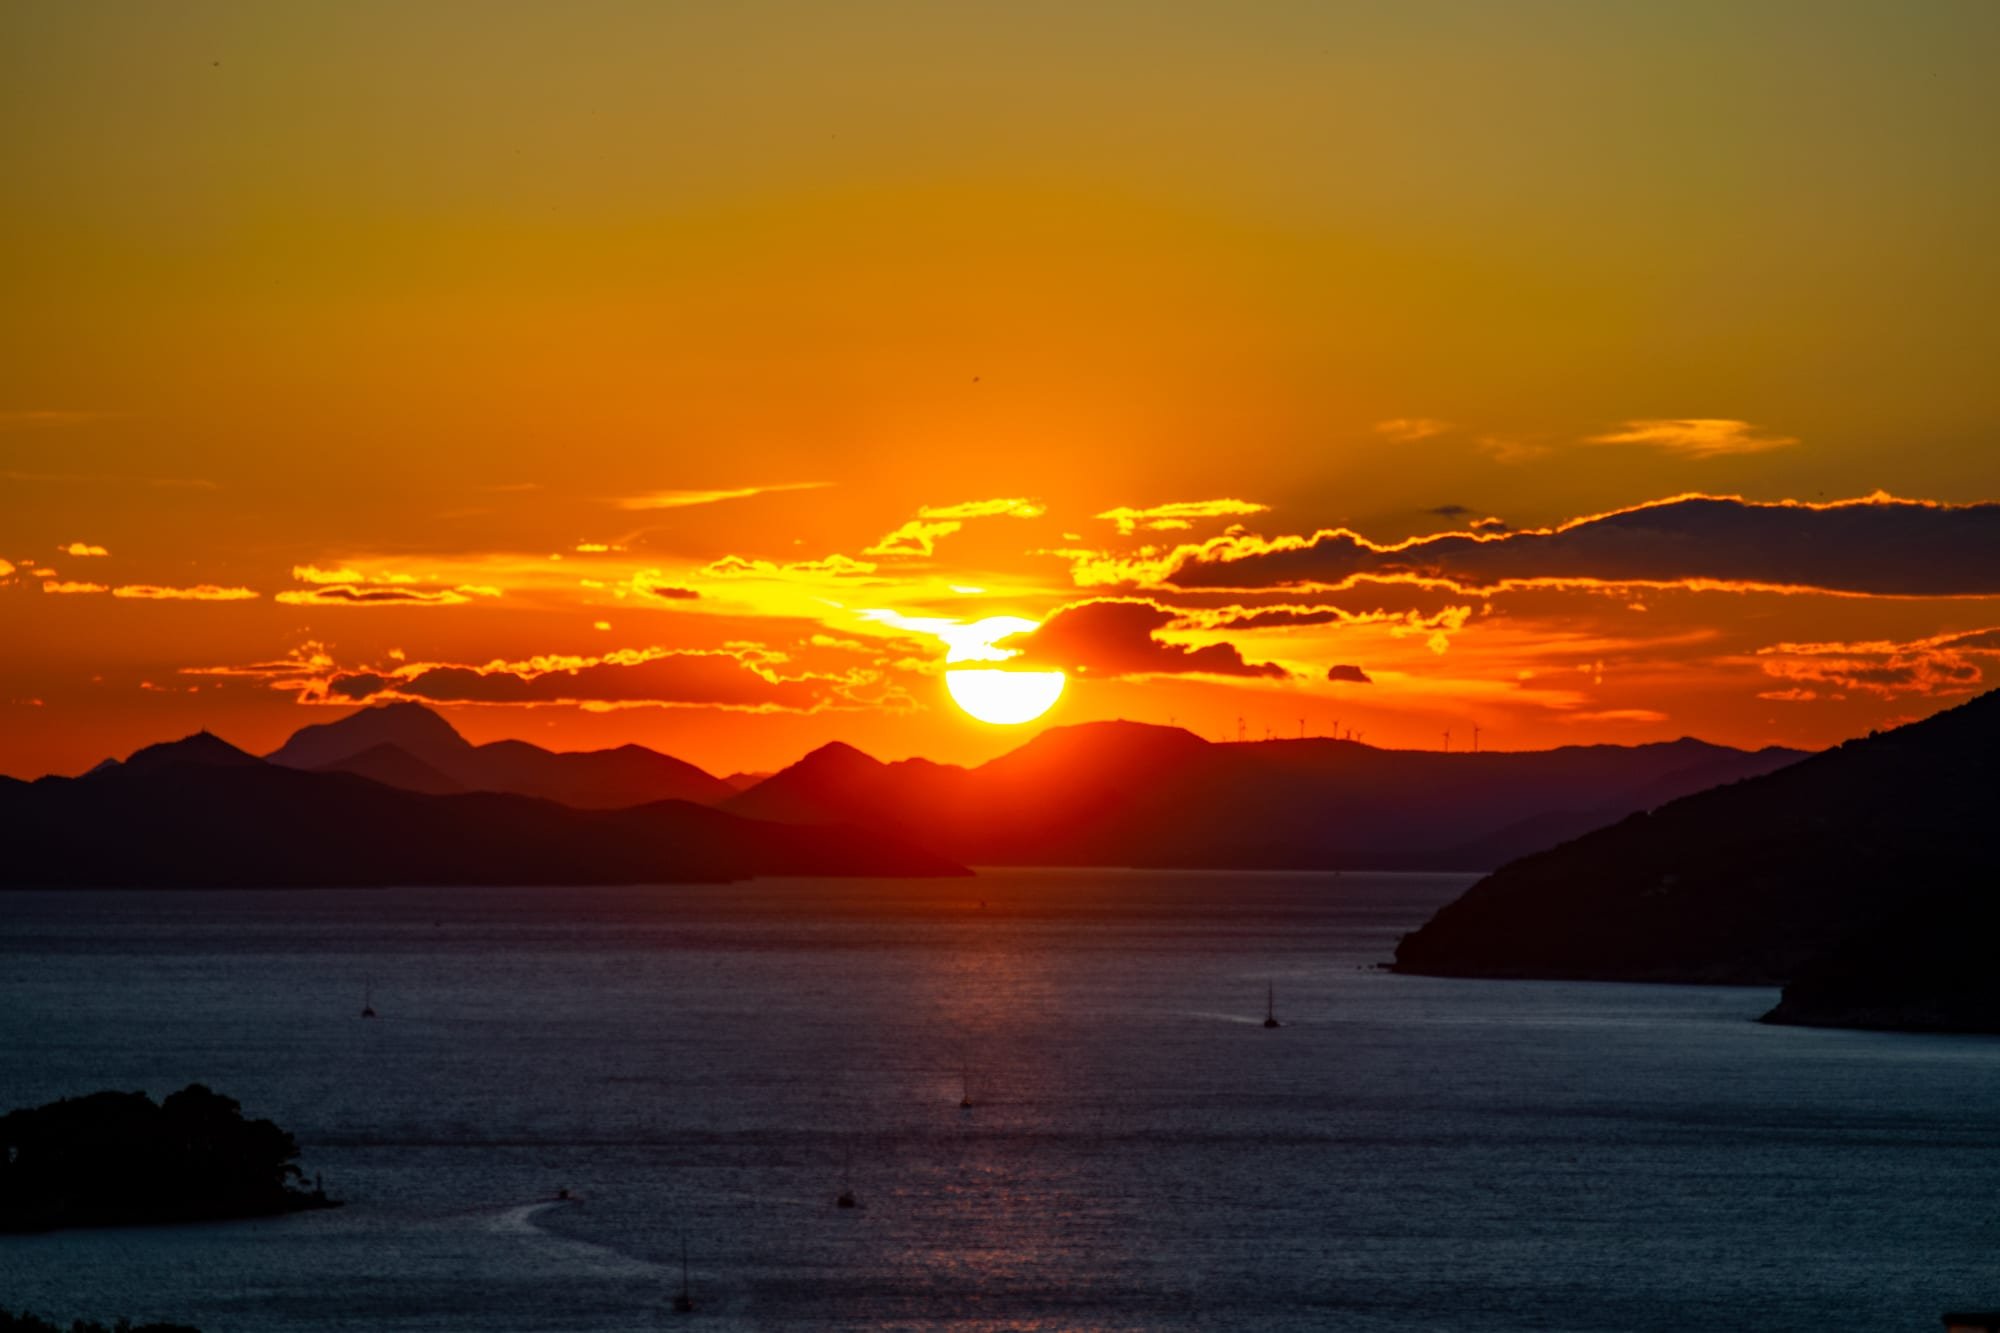 What to Do in Dubrovnik: Sunset in Dubrovnik Croatia